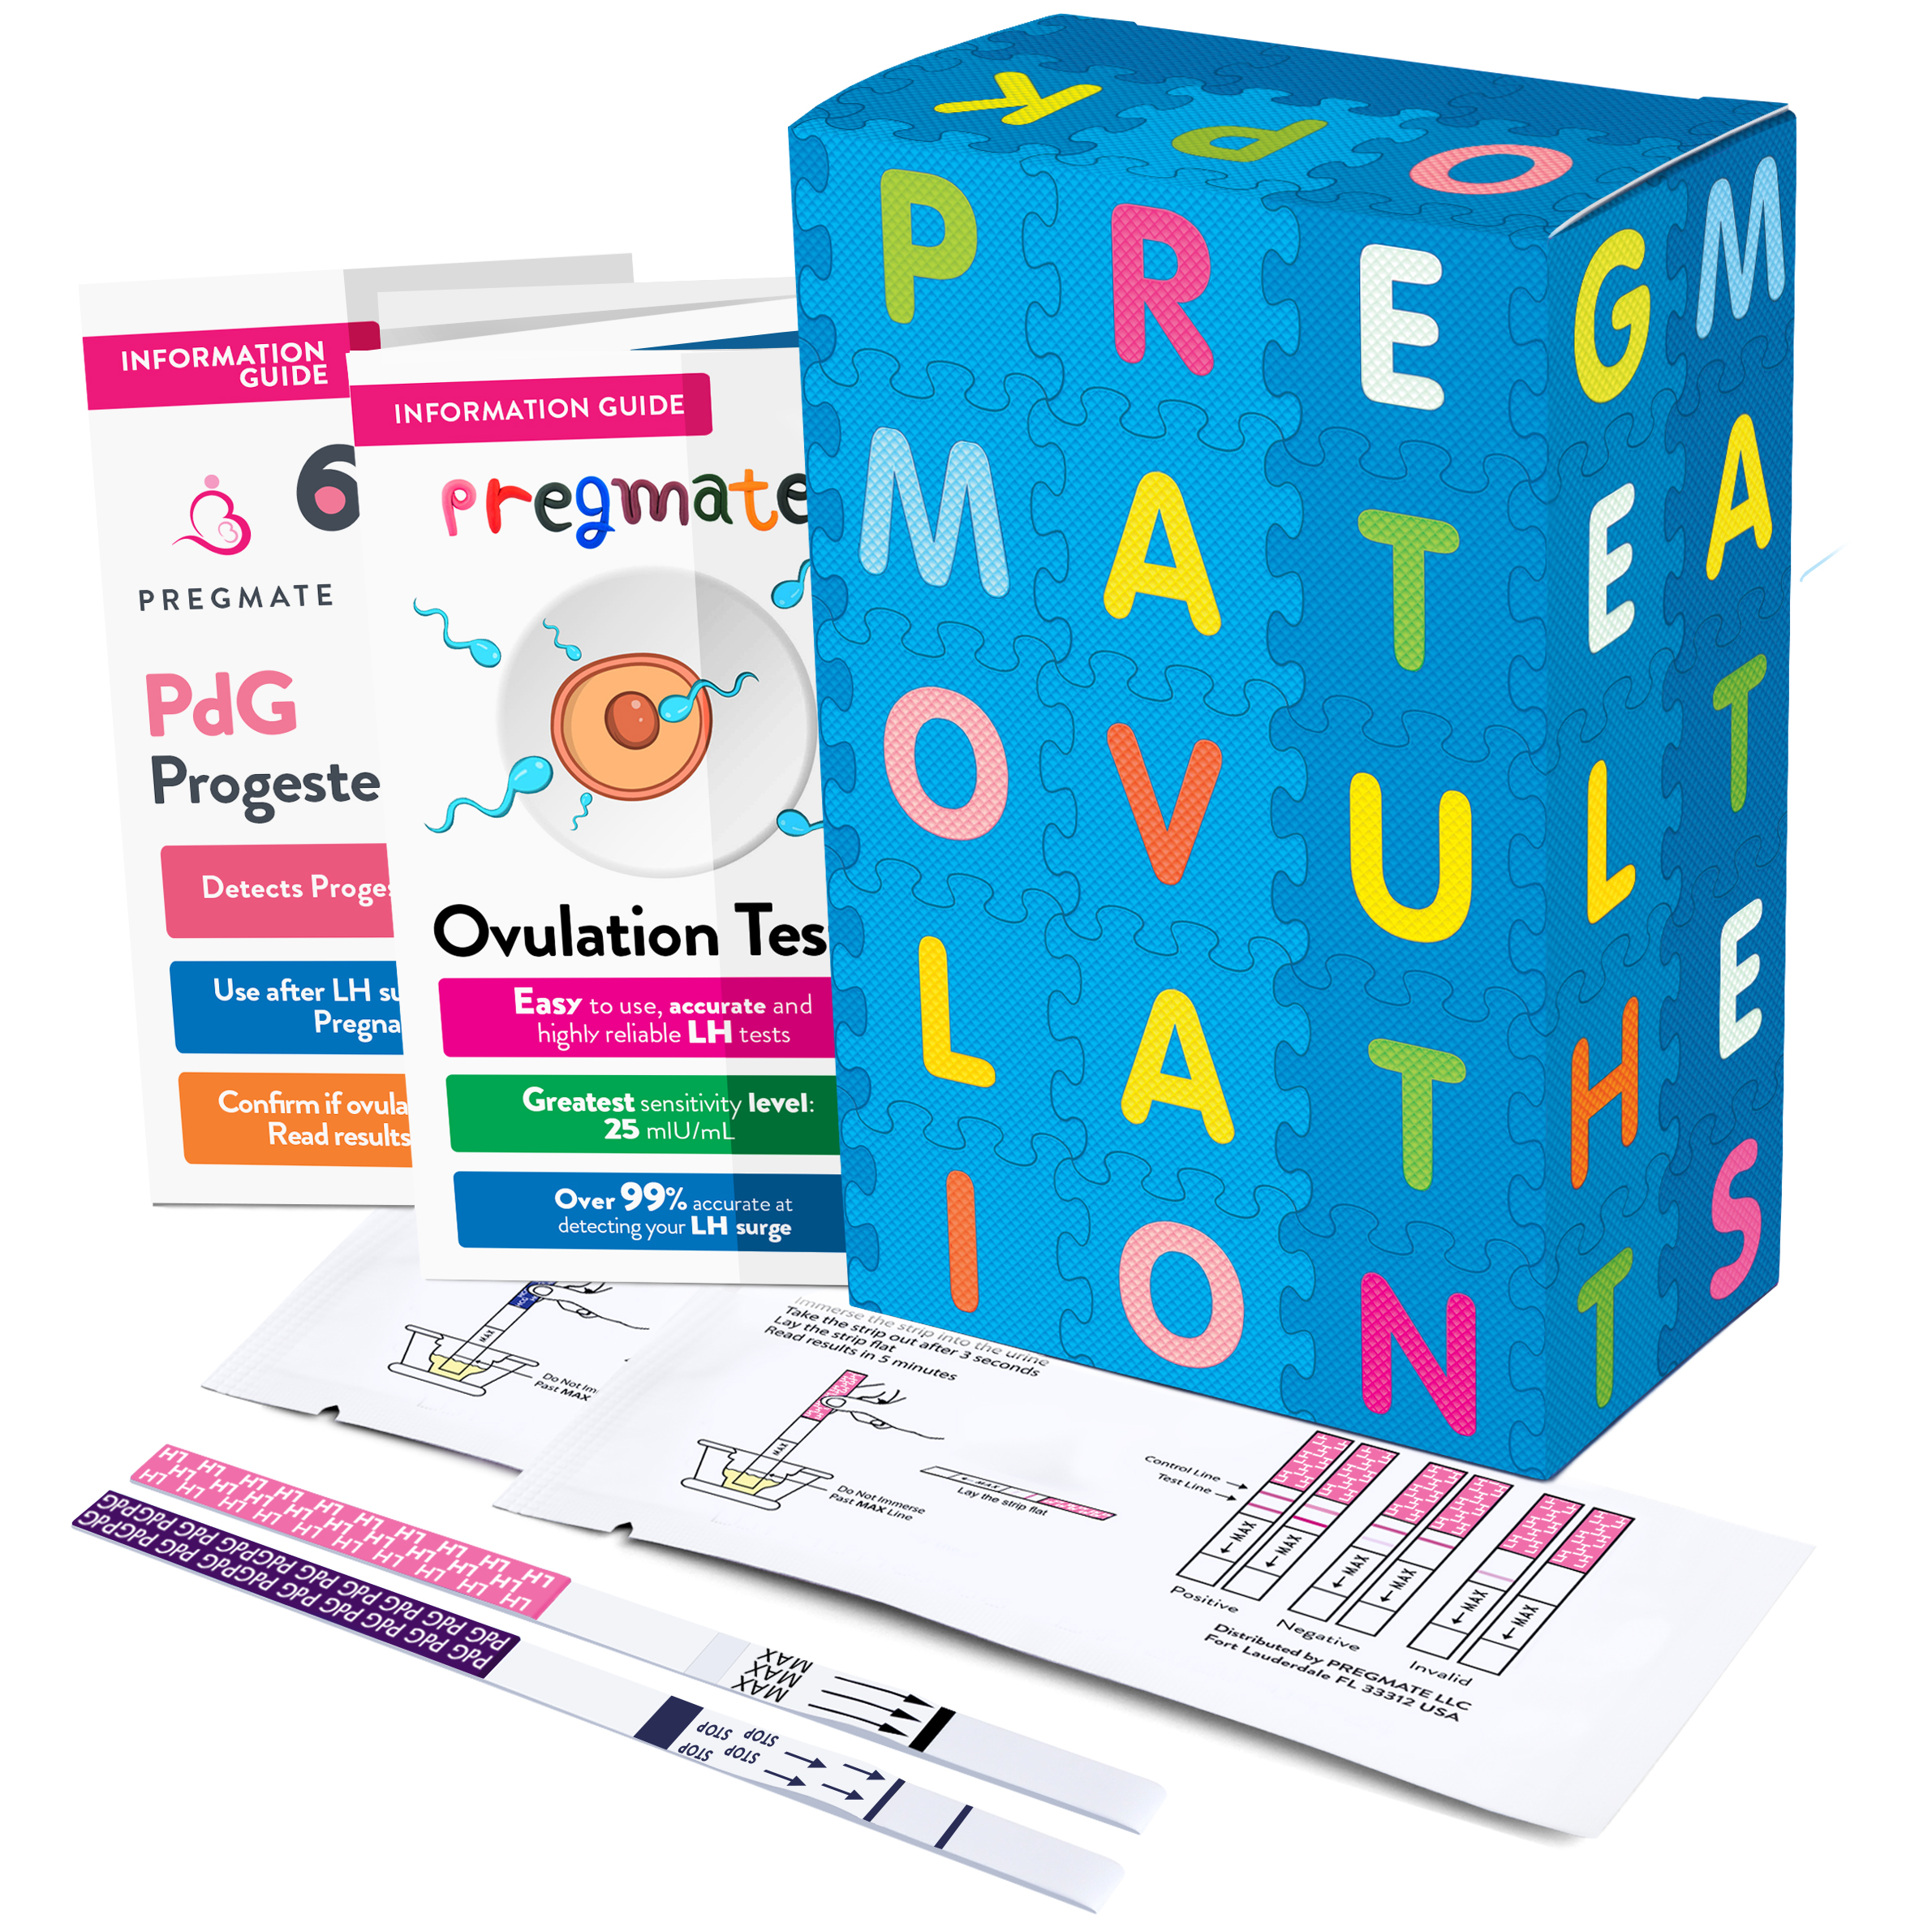 PREGMATE 10 Ovulation (LH) and 2 Progesterone (PdG) Urine Test Strips At Home Fertility Confirmation Predictor Kit (10 LH + 2 PdG)